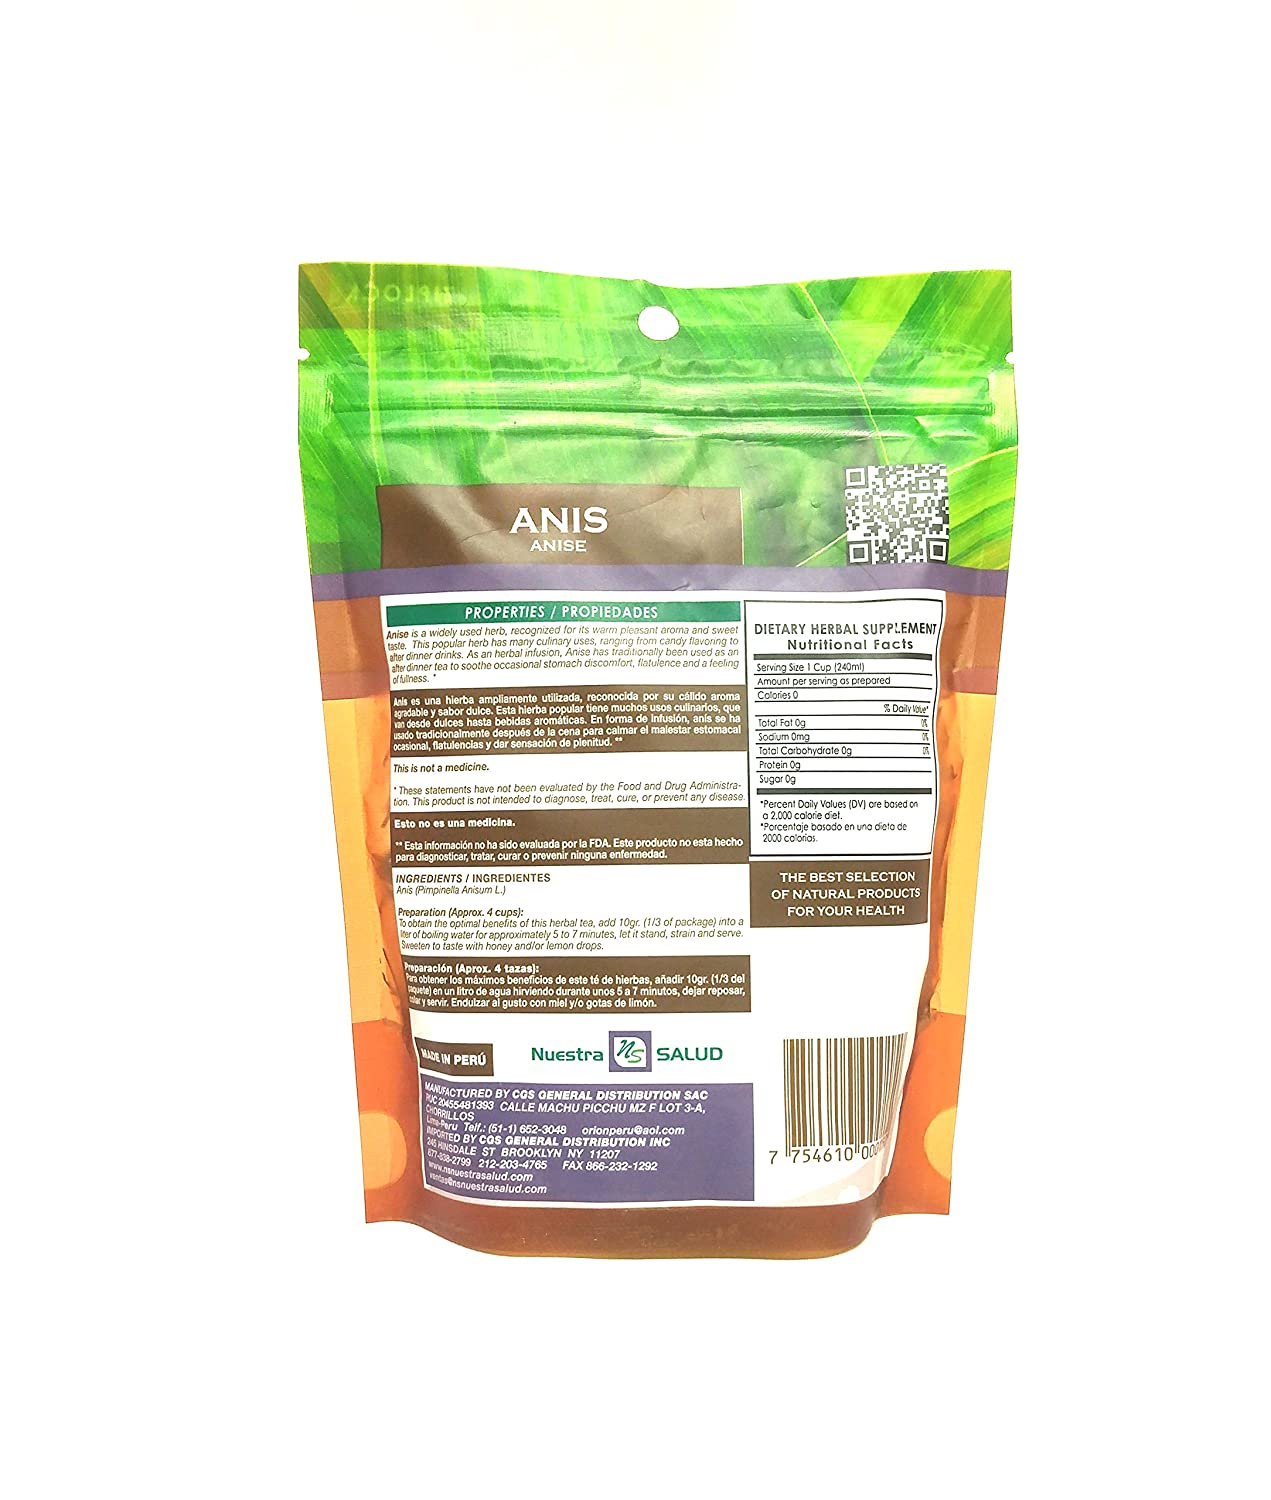 Amazon.com : Anis Herbal Tea Anise 3 Pack : Herbal Remedy Teas : Grocery & Gourmet Food